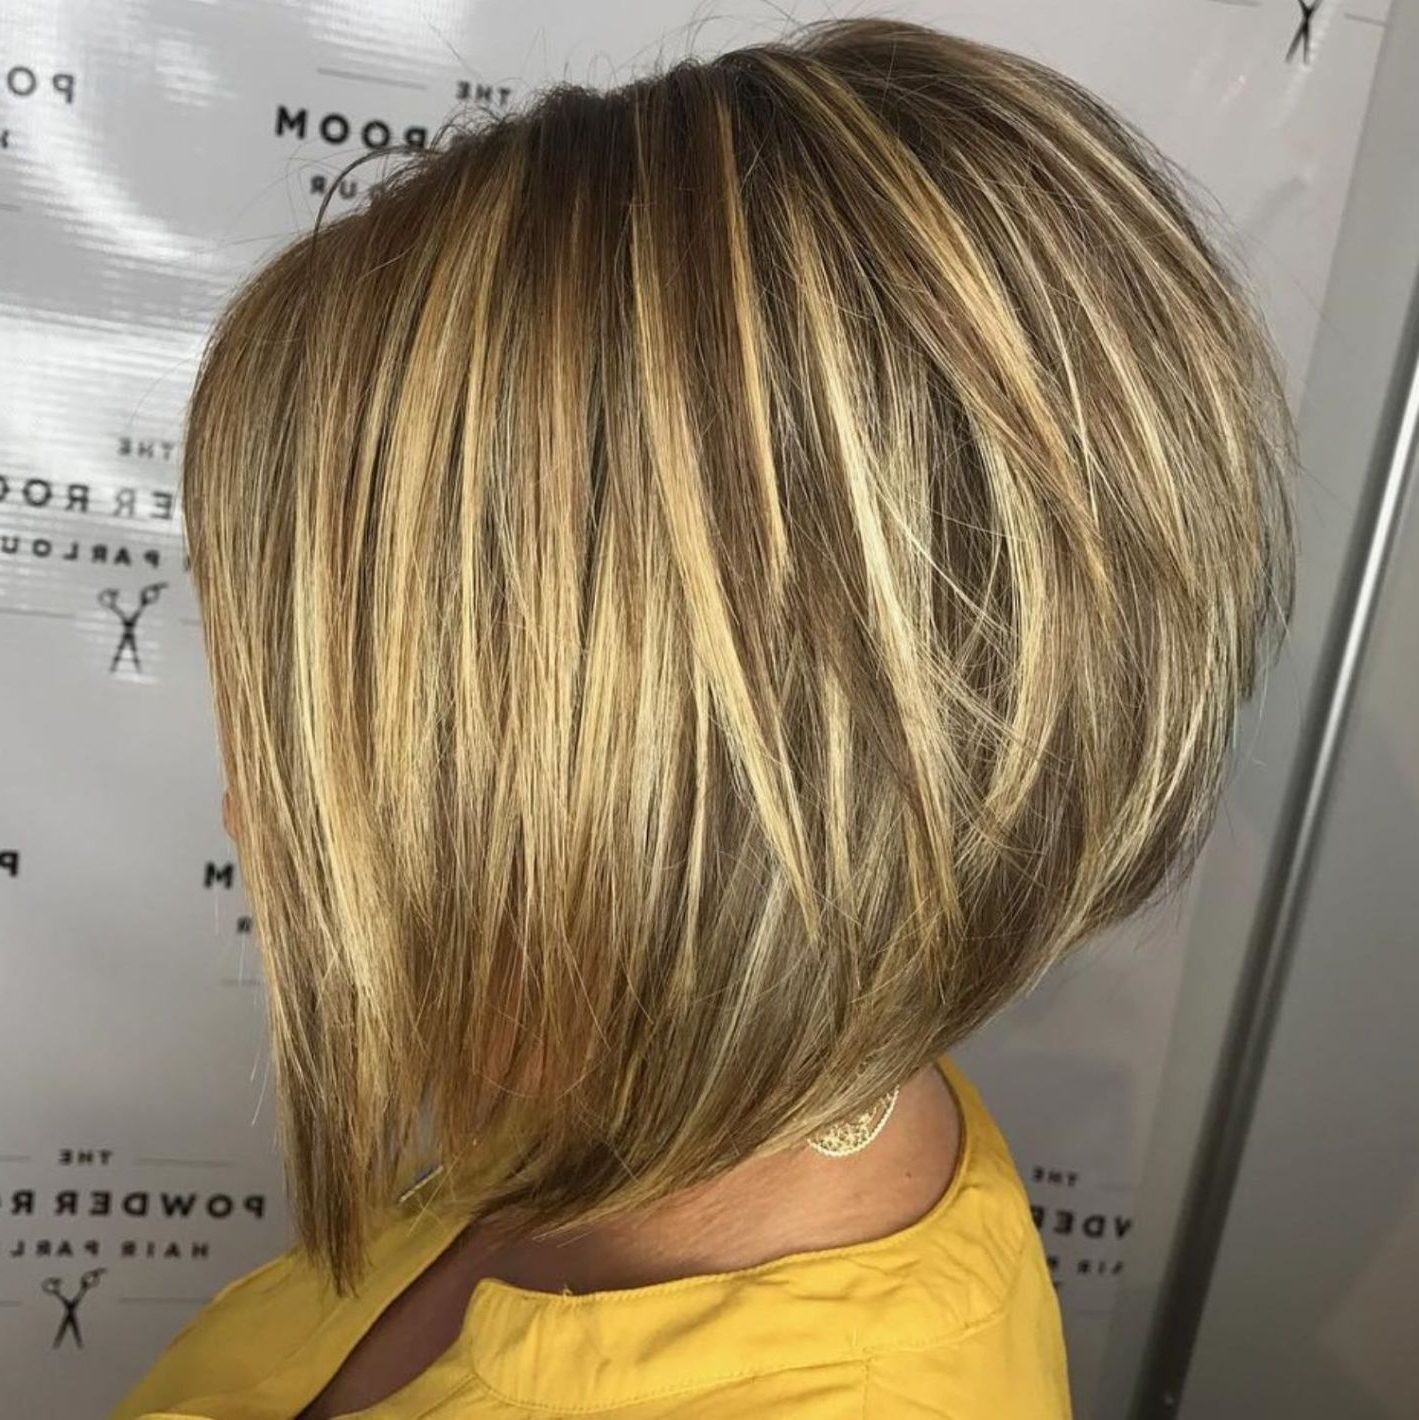 The Full Stack: 50 Hottest Stacked Haircuts | Hair | Pinterest With Stacked Blonde Balayage Pixie Hairstyles For Brunettes (View 12 of 20)